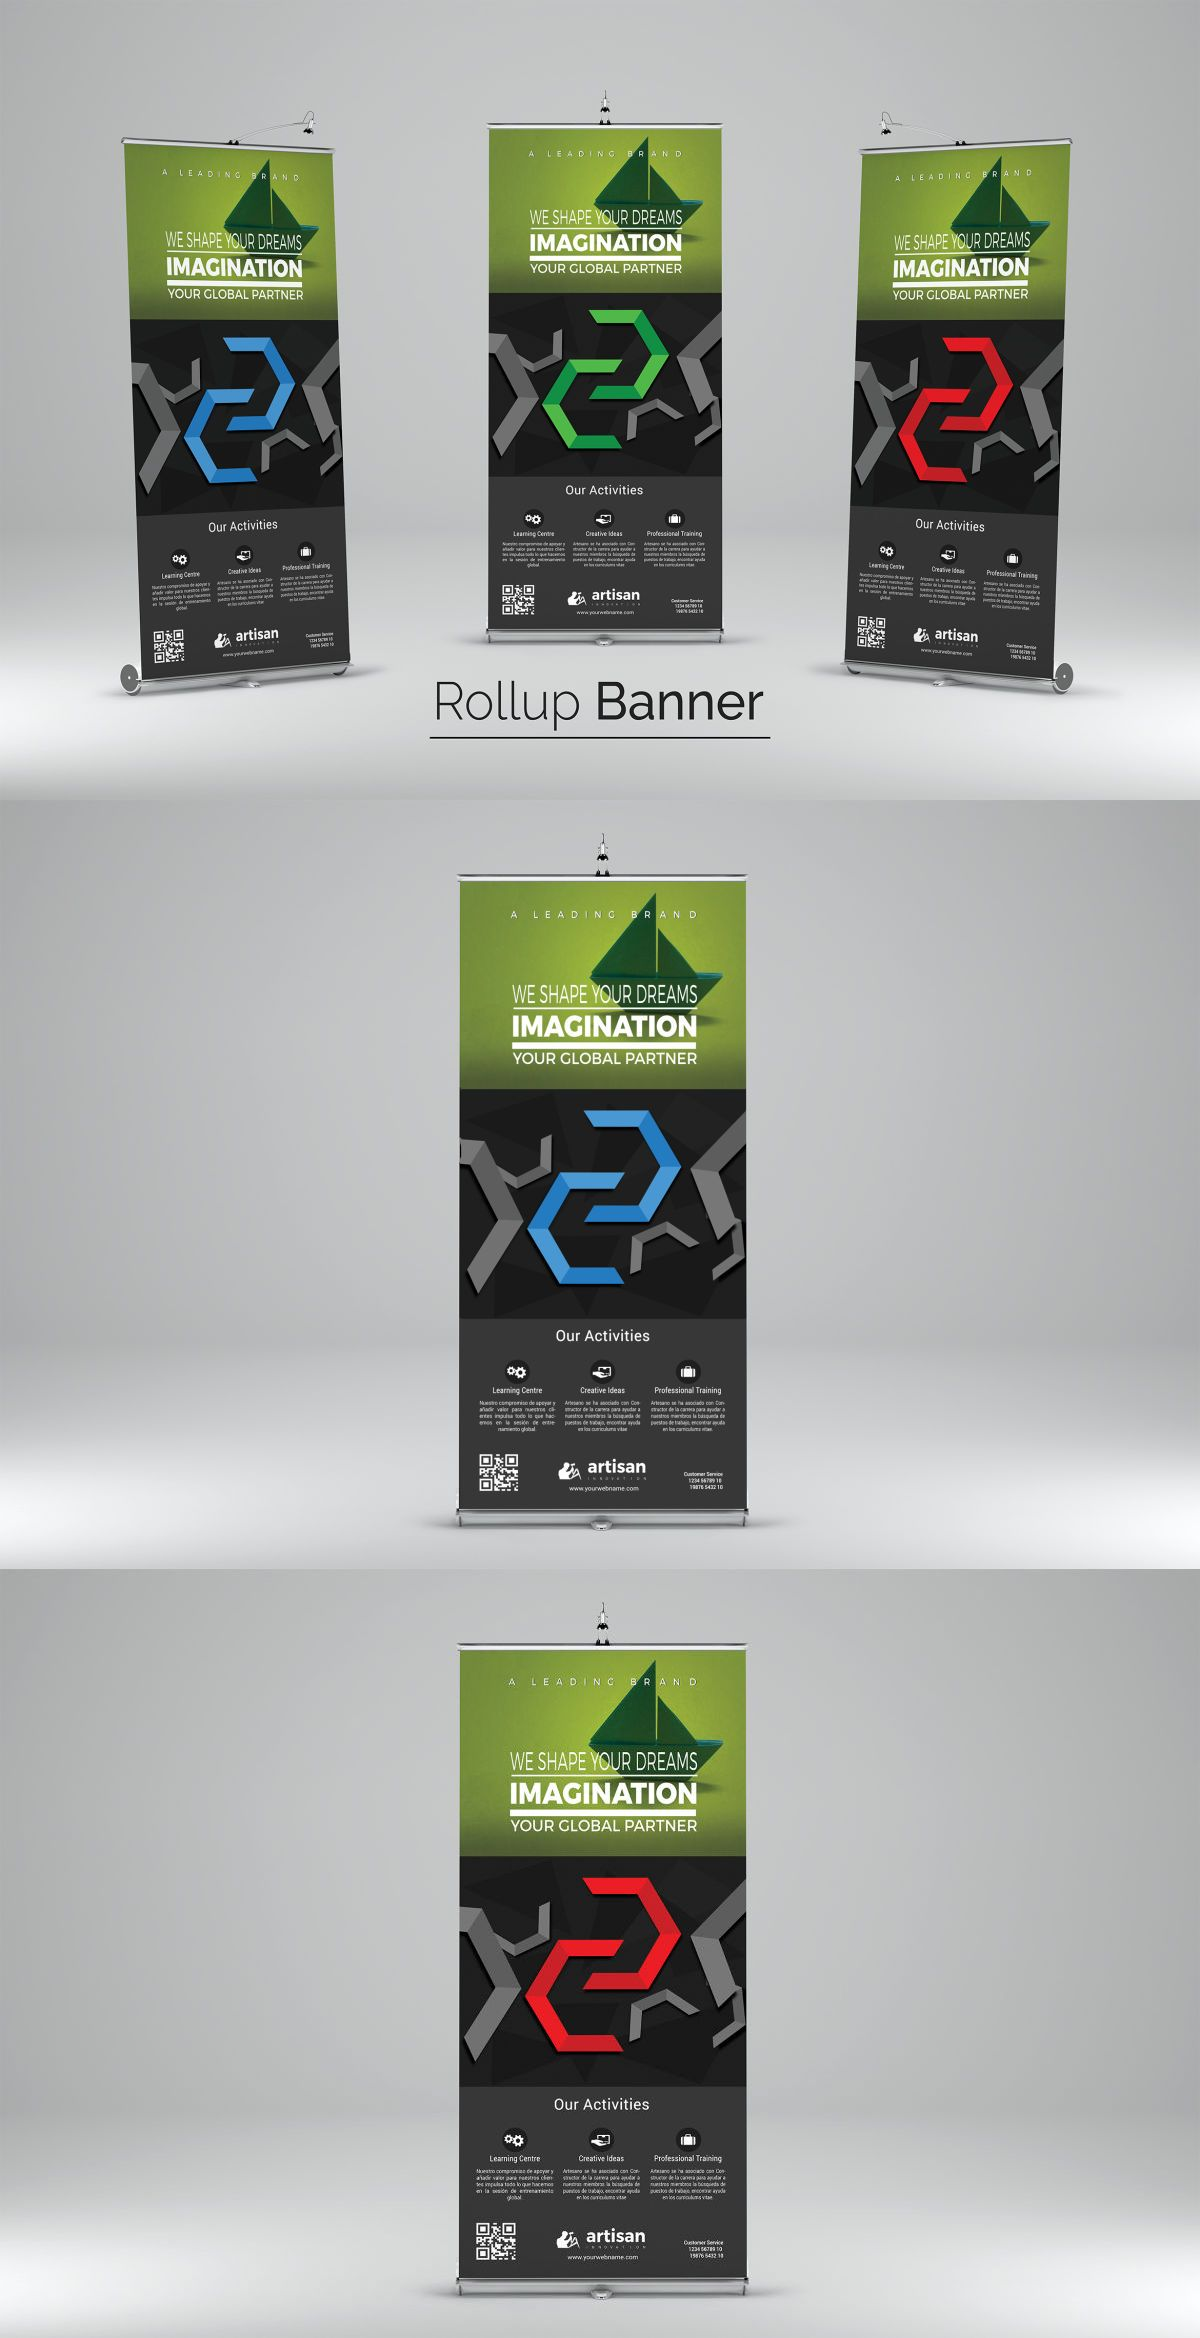 Rollup Banner Template AI, EPS, PSD | Roll-Up Banner Design ...